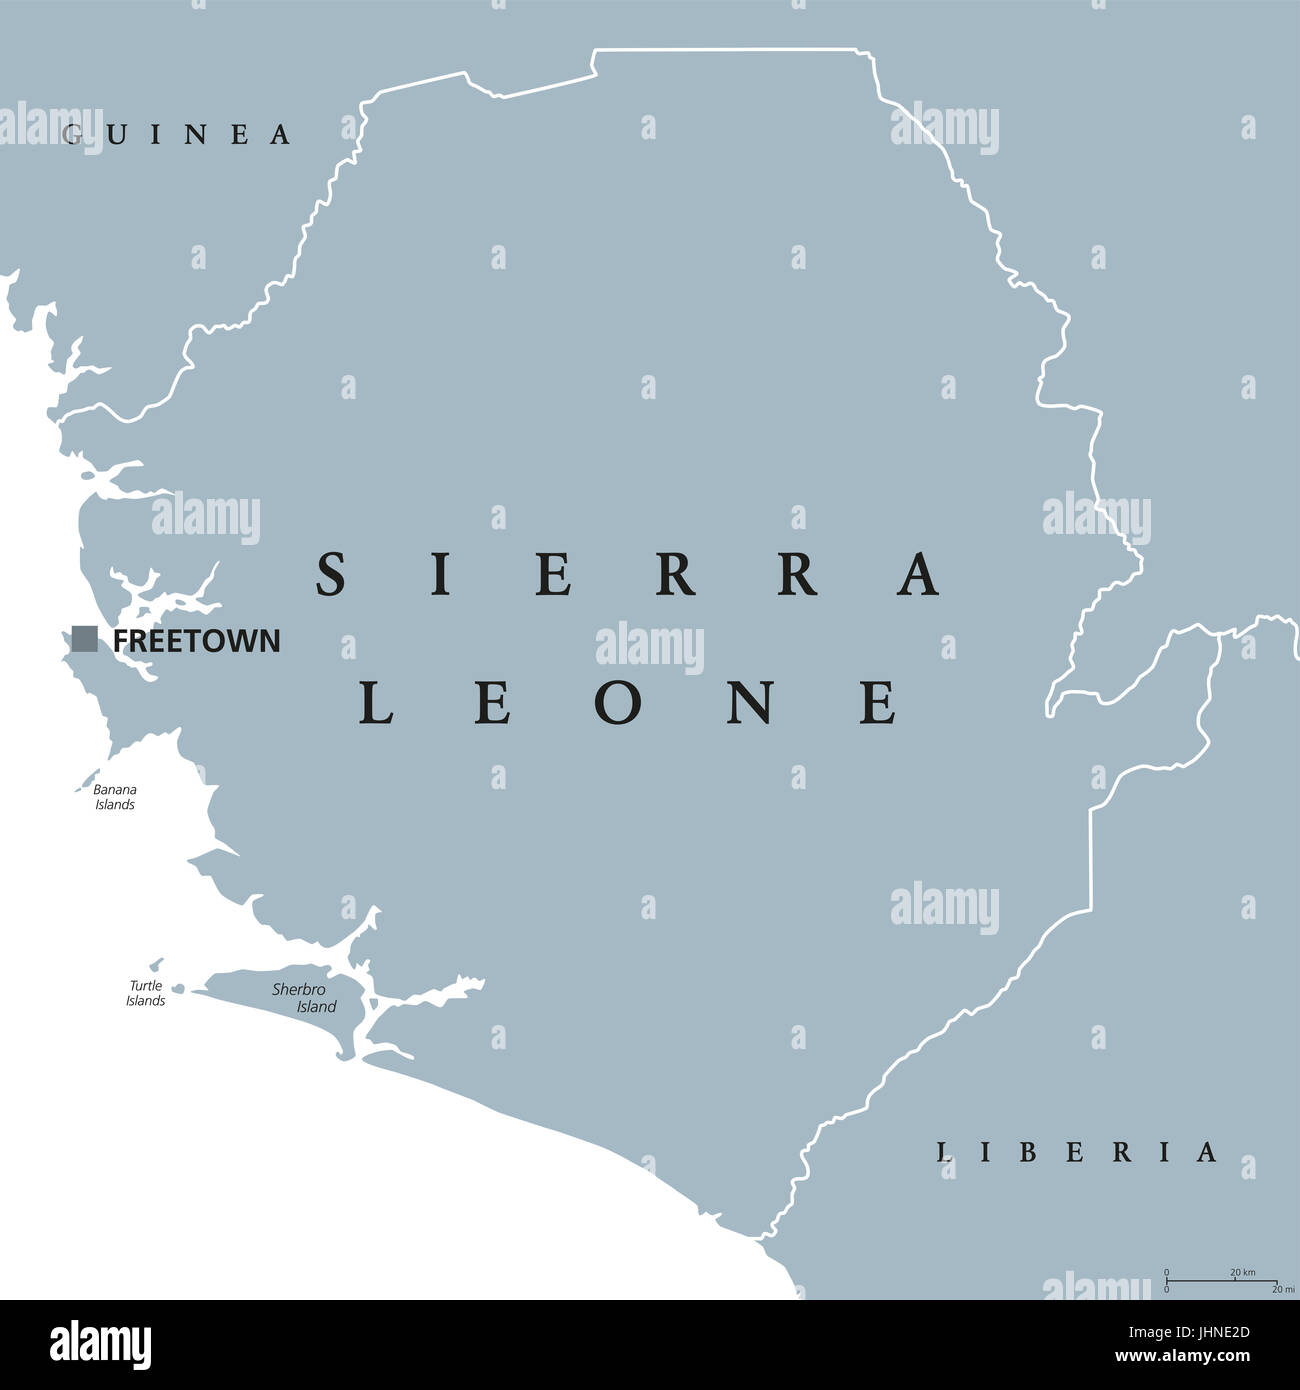 Sierra Leone political map with capital Freetown and international